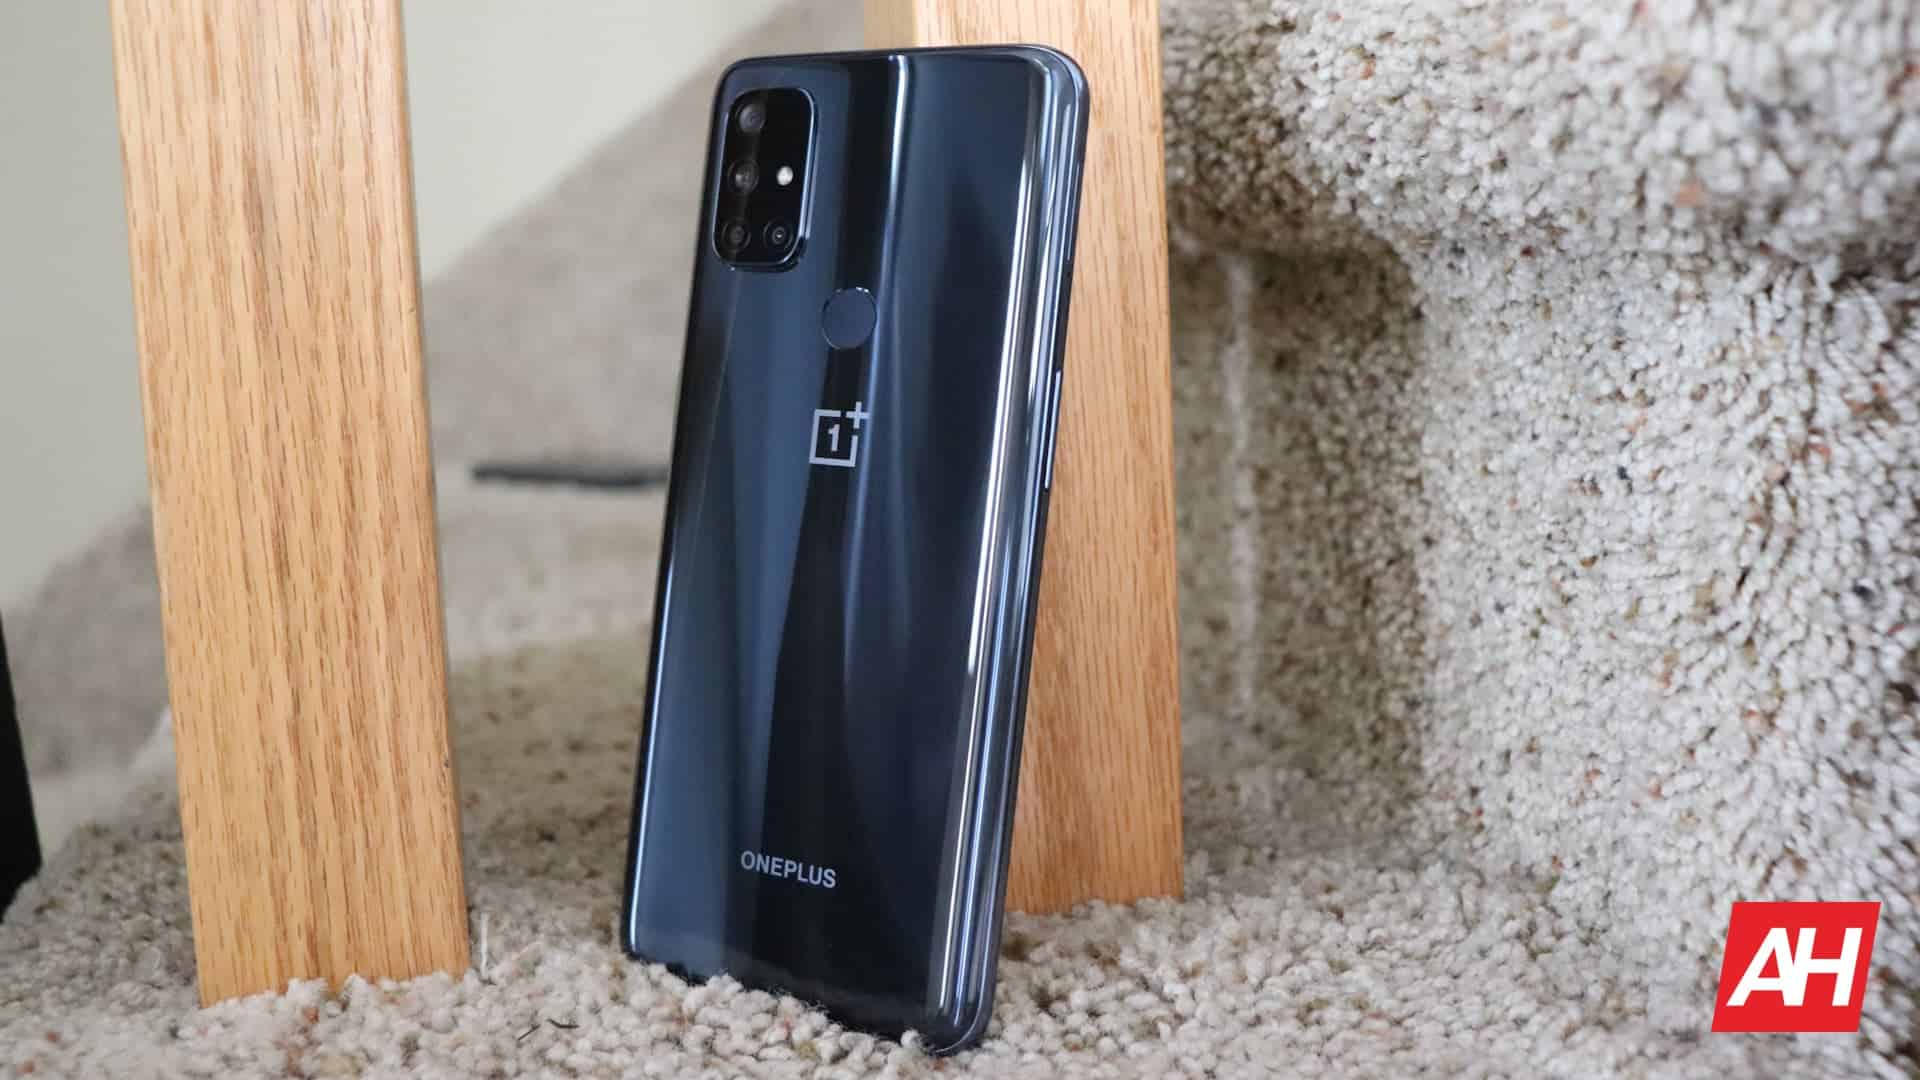 OnePlus brings the Nord N10 5G and Nord N100 to North America